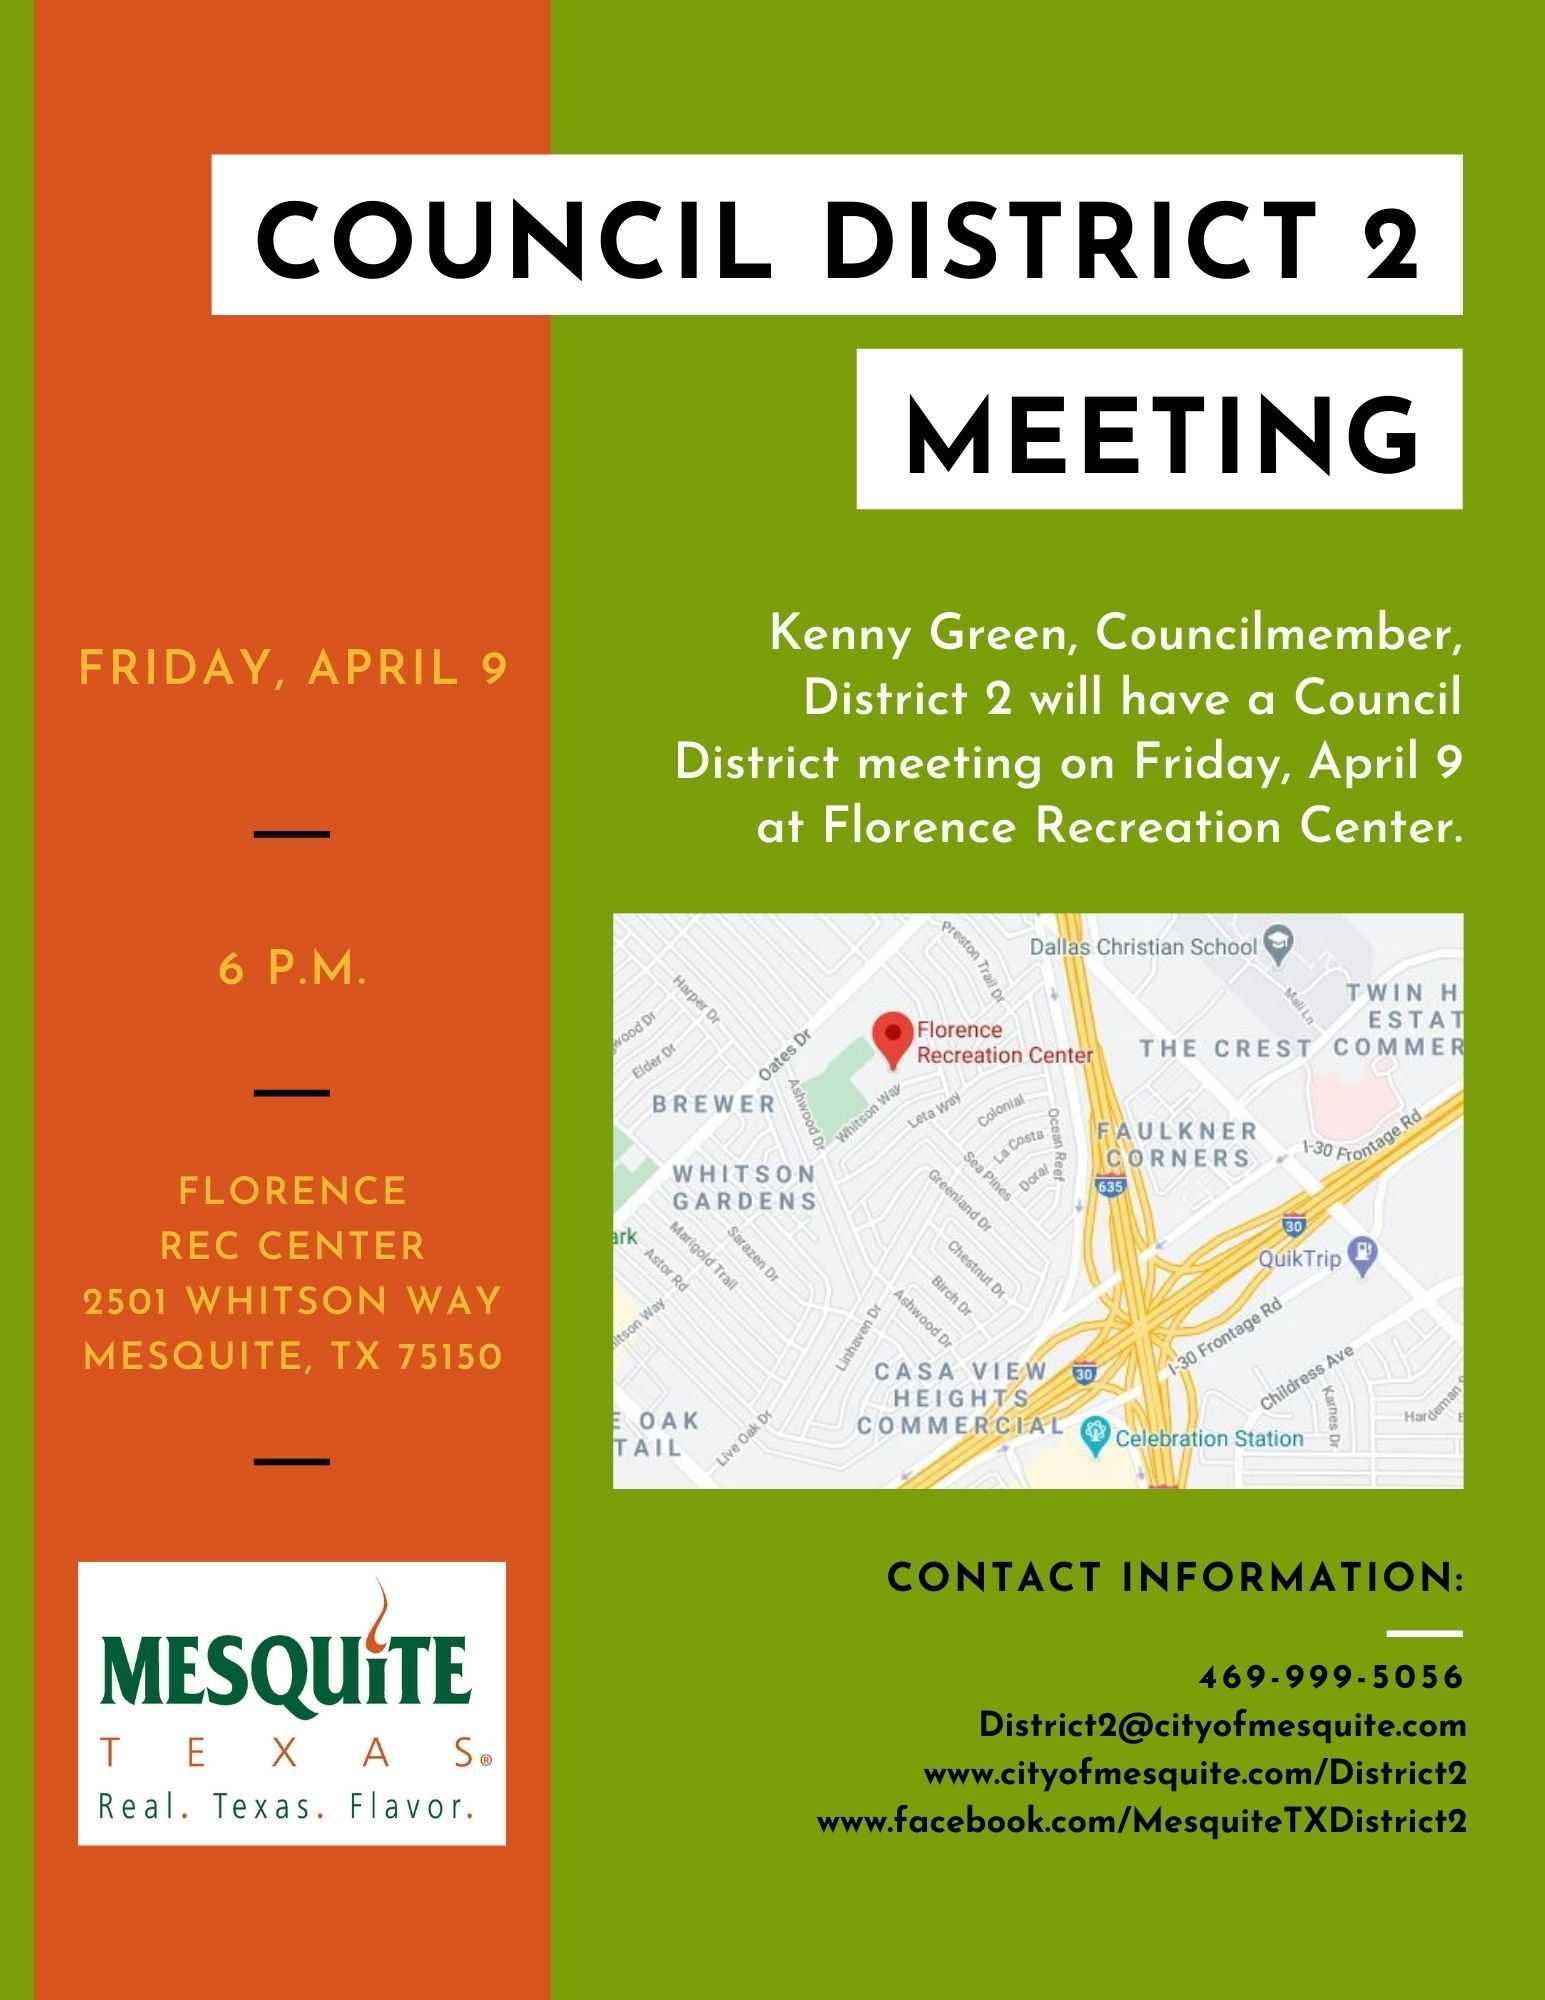 Kenny Green District 2 meeting flyer FINAL